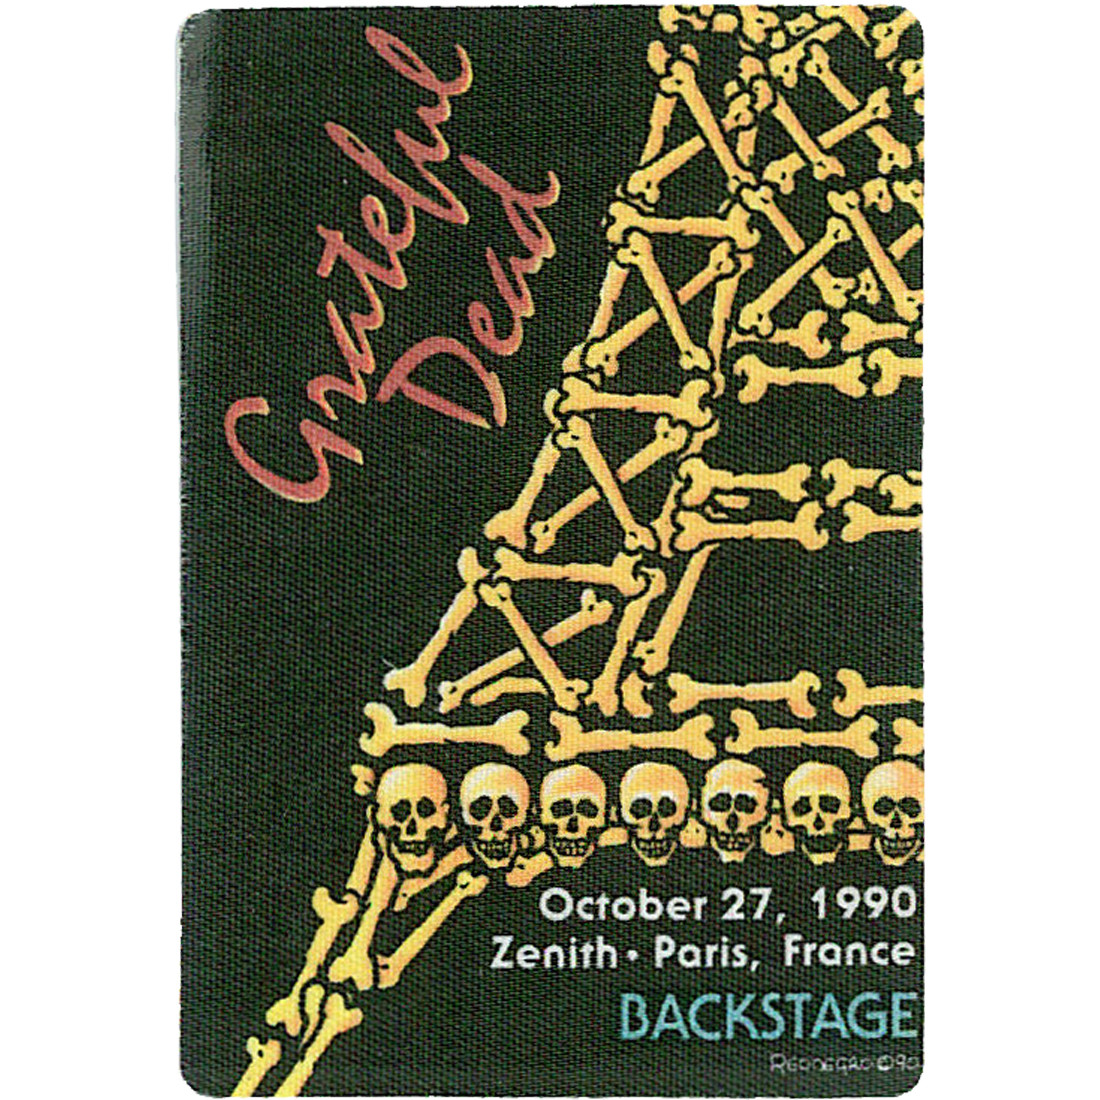 Grateful Dead 1990 10-27 Backstage Pass